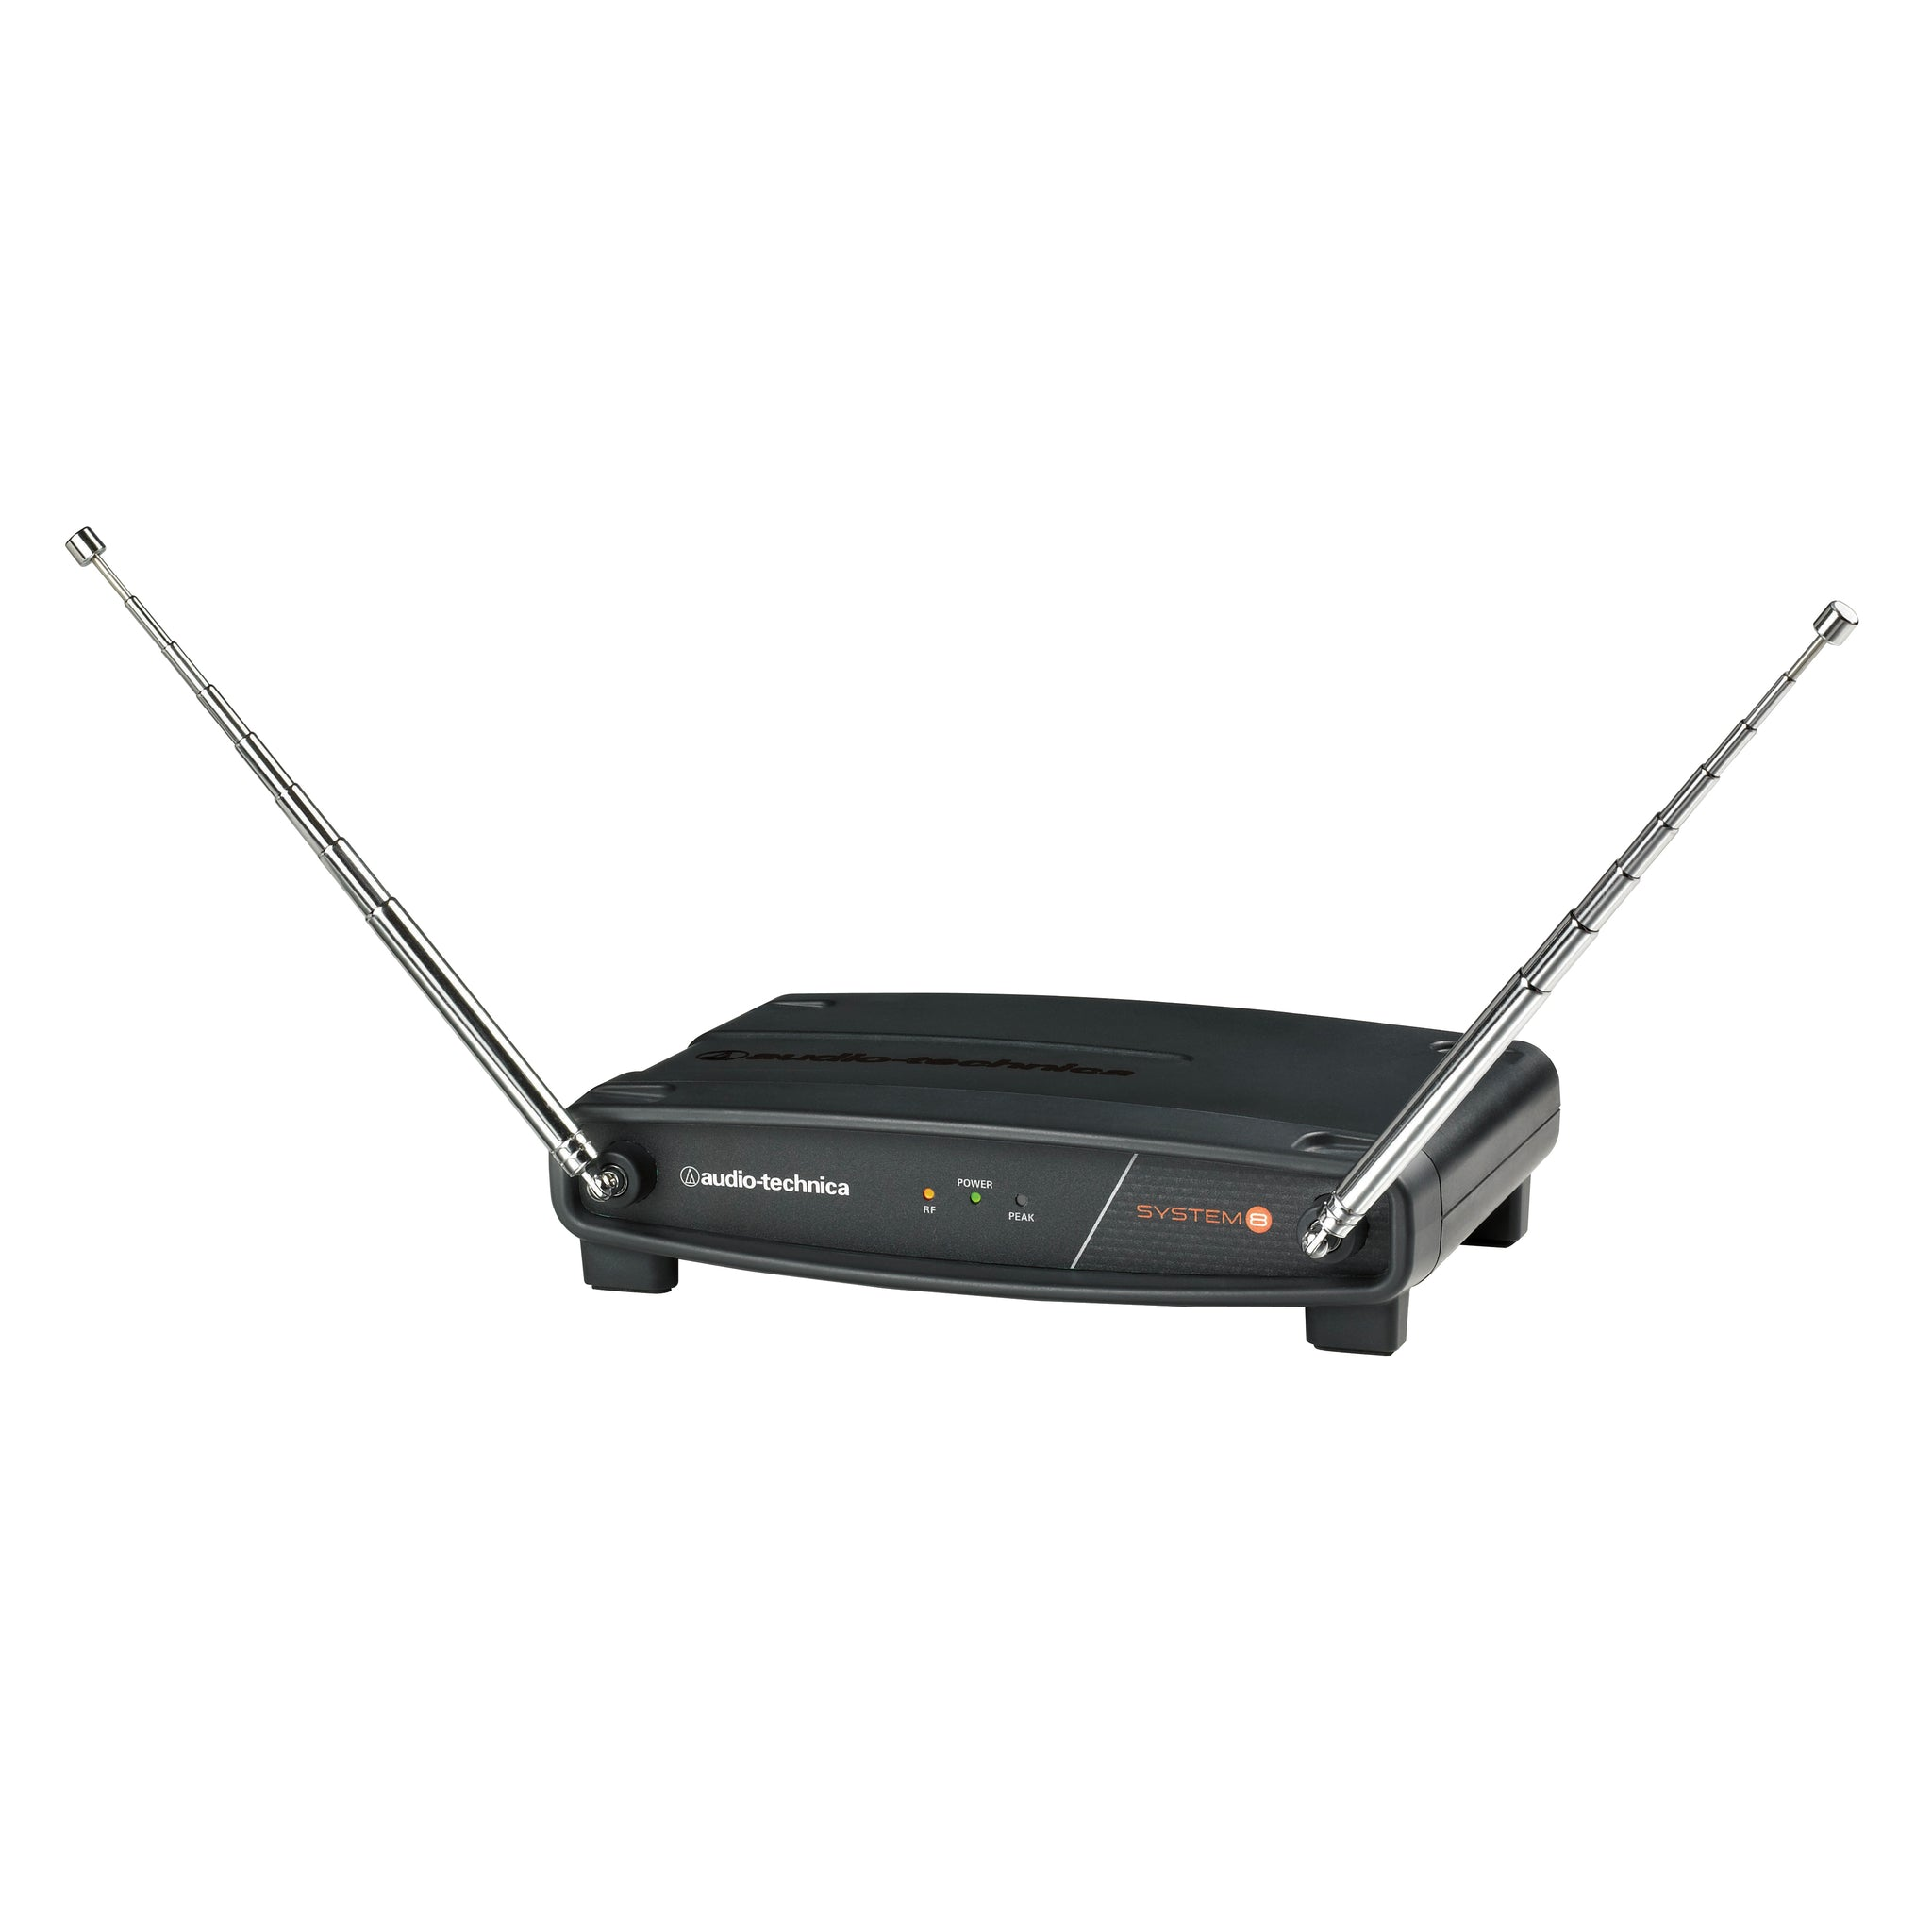 Audio Technica ATW-801 System 8 VHF Wireless Systems